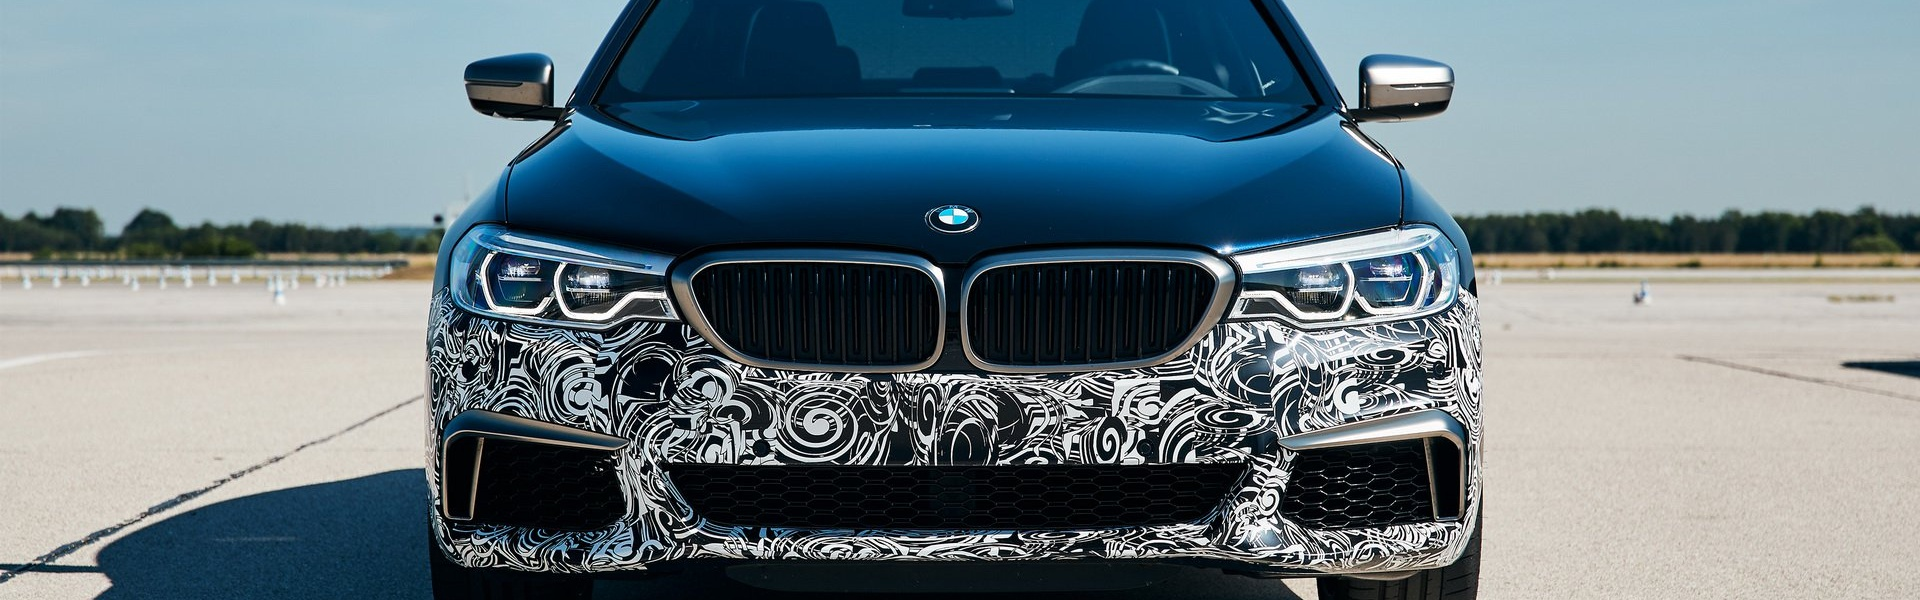 bmw-power-bev-concept-13.jpg